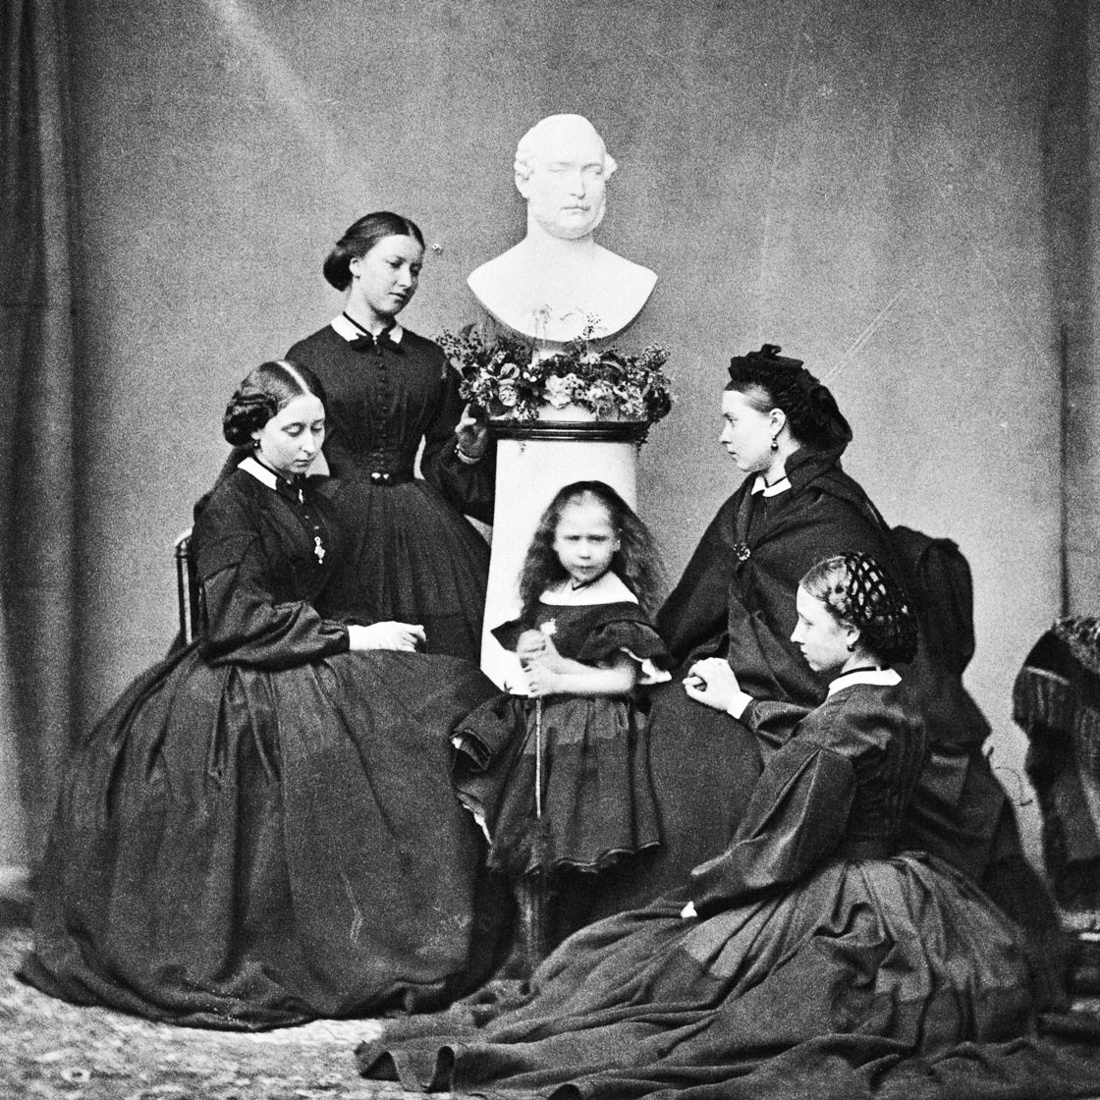 Queen Victoria's five daughters (Alice, Helena, Beatrice, Victoria and Louise.) Photo via Wikimedia Commons.